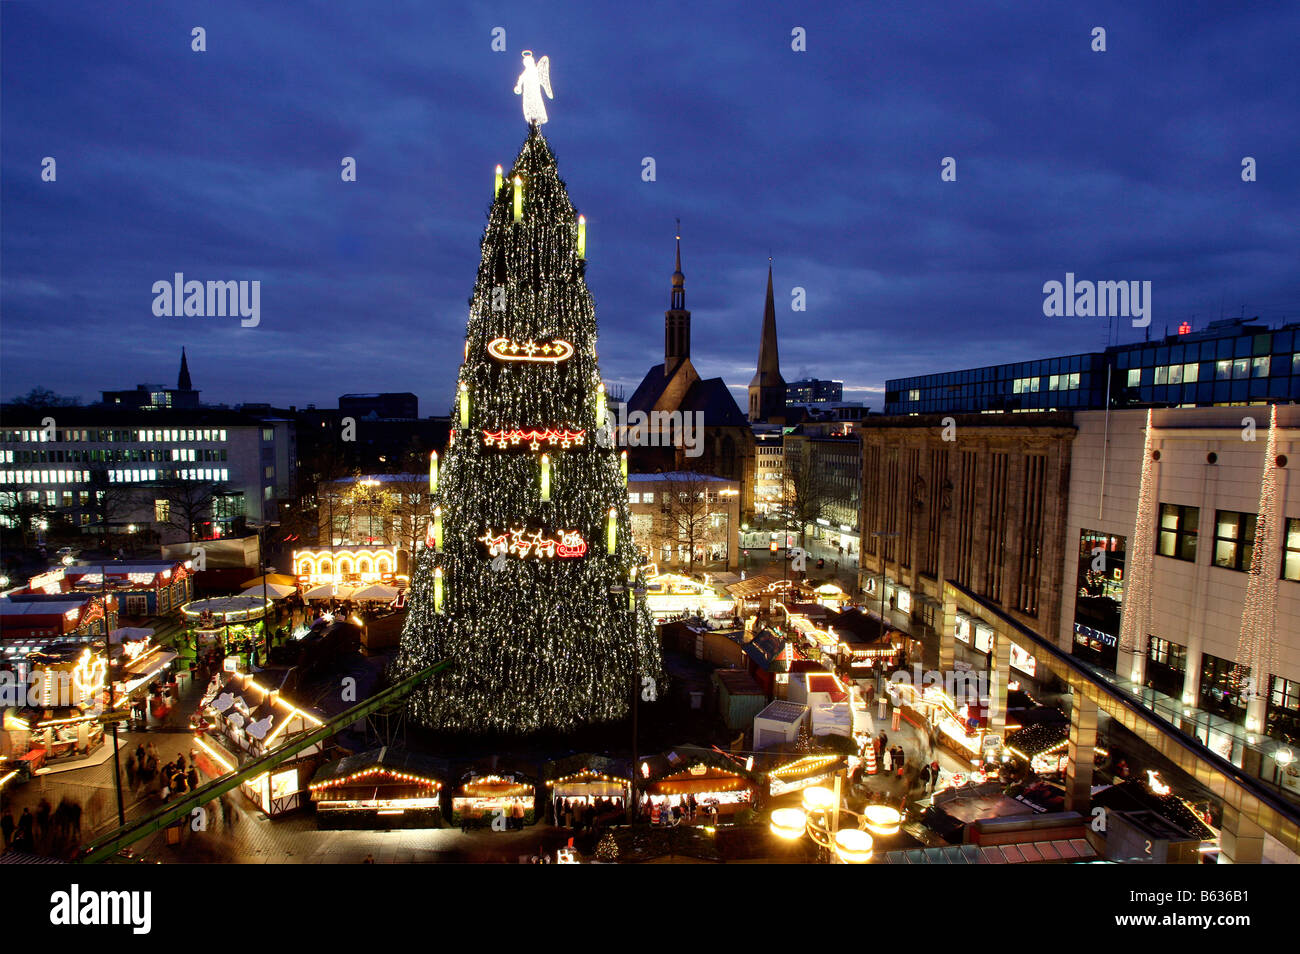 Dortmund/Germany: the largest Christmas tree of the world on the ...